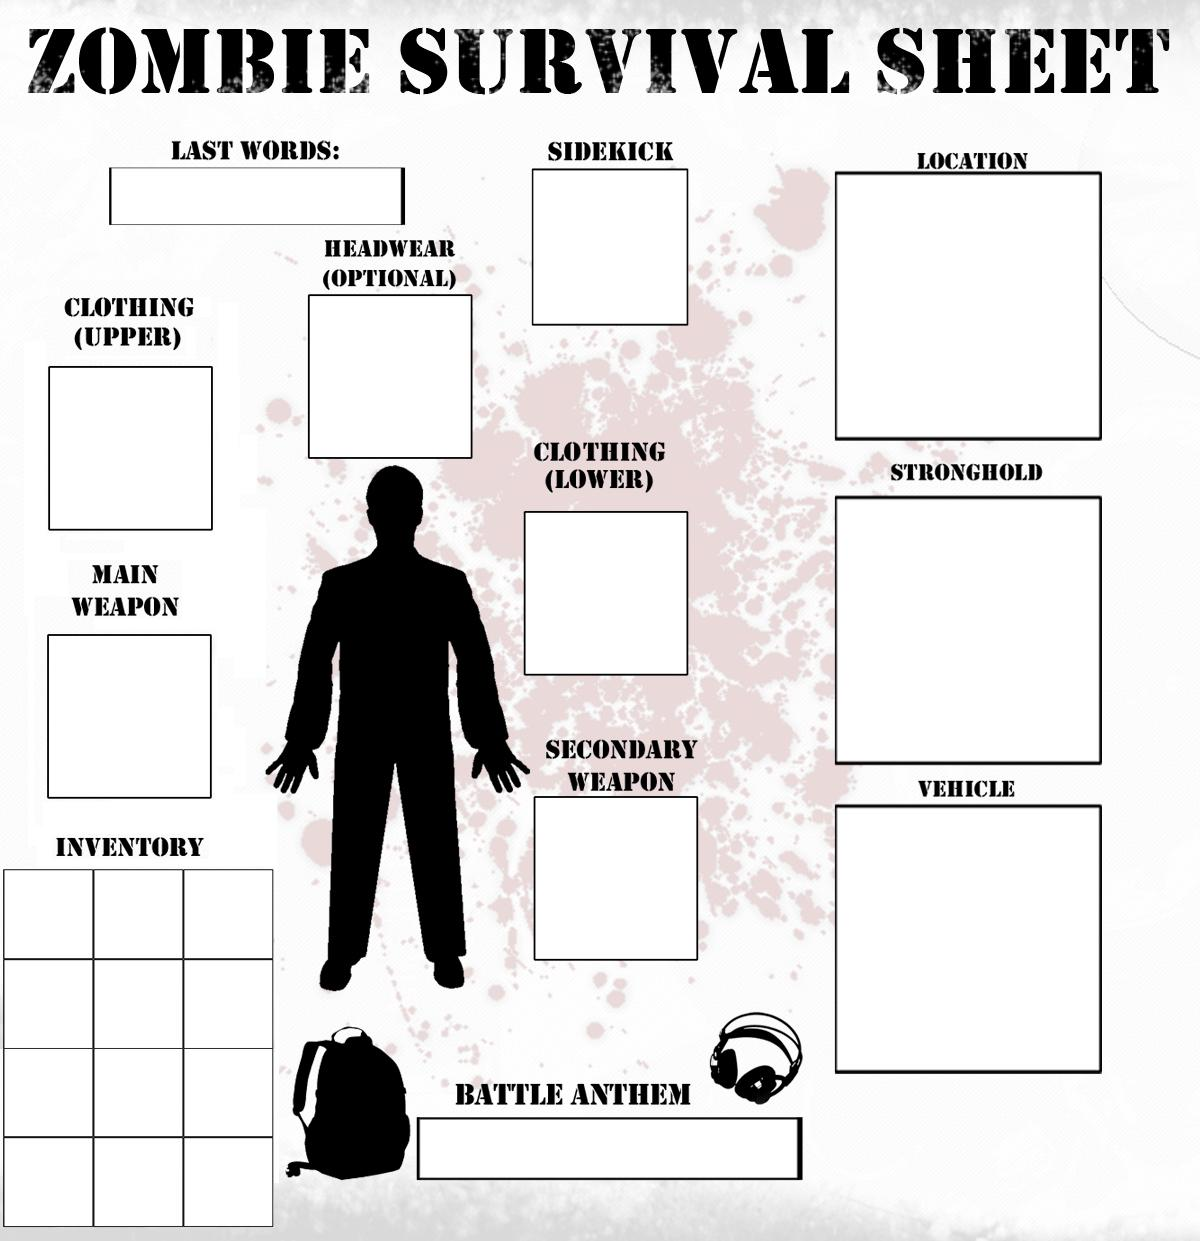 vo69002,1293530171,Zombie Survival Sheet Template by MrAlf